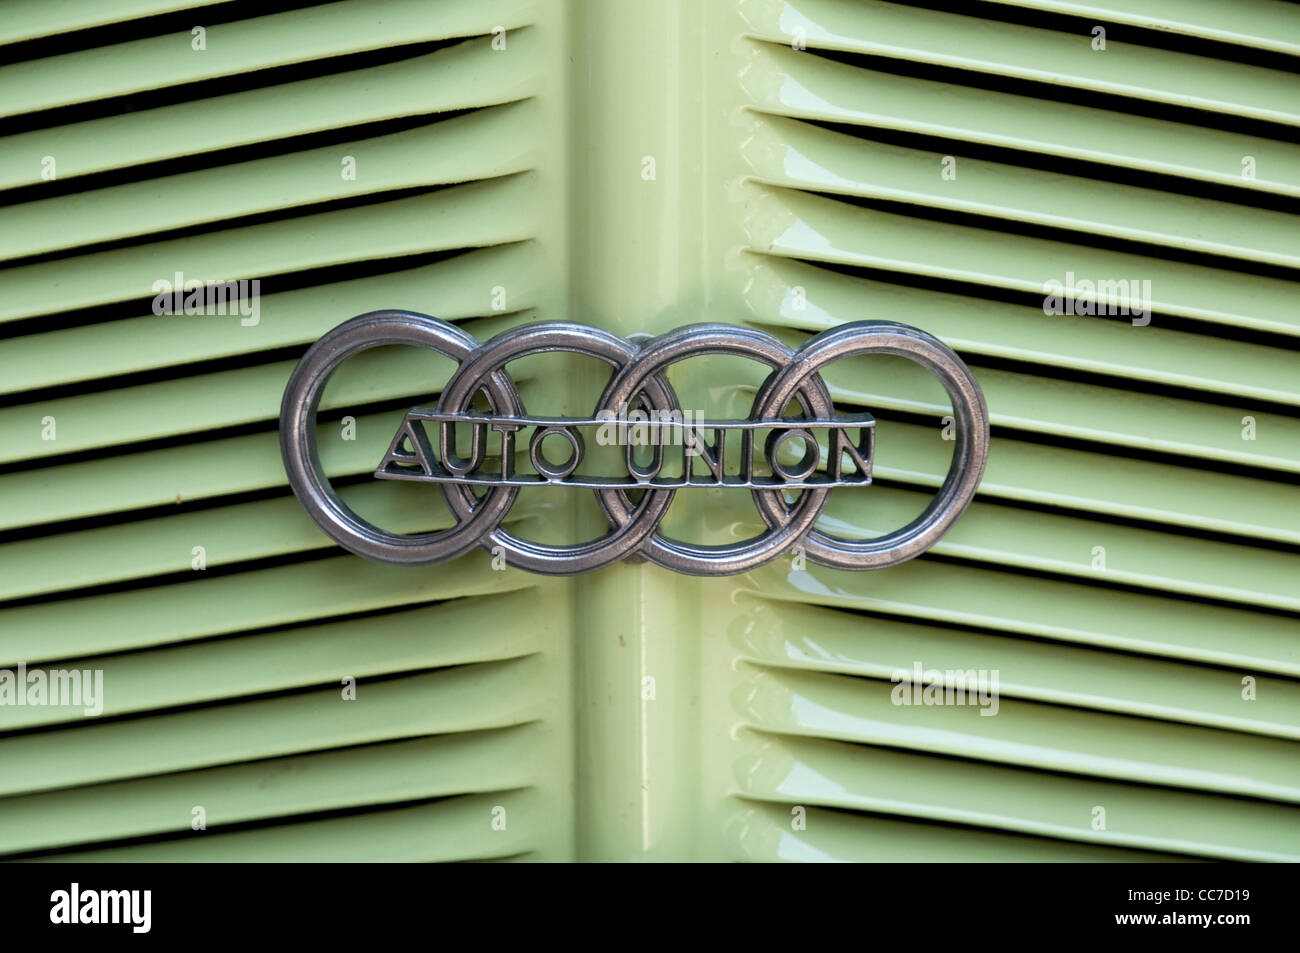 Vintage car, historic Audi, DKW Dampf-Kraft-Wagen, steam-powered car, detail, Bad Langensalza, Thuringia, Germany, - Stock Image